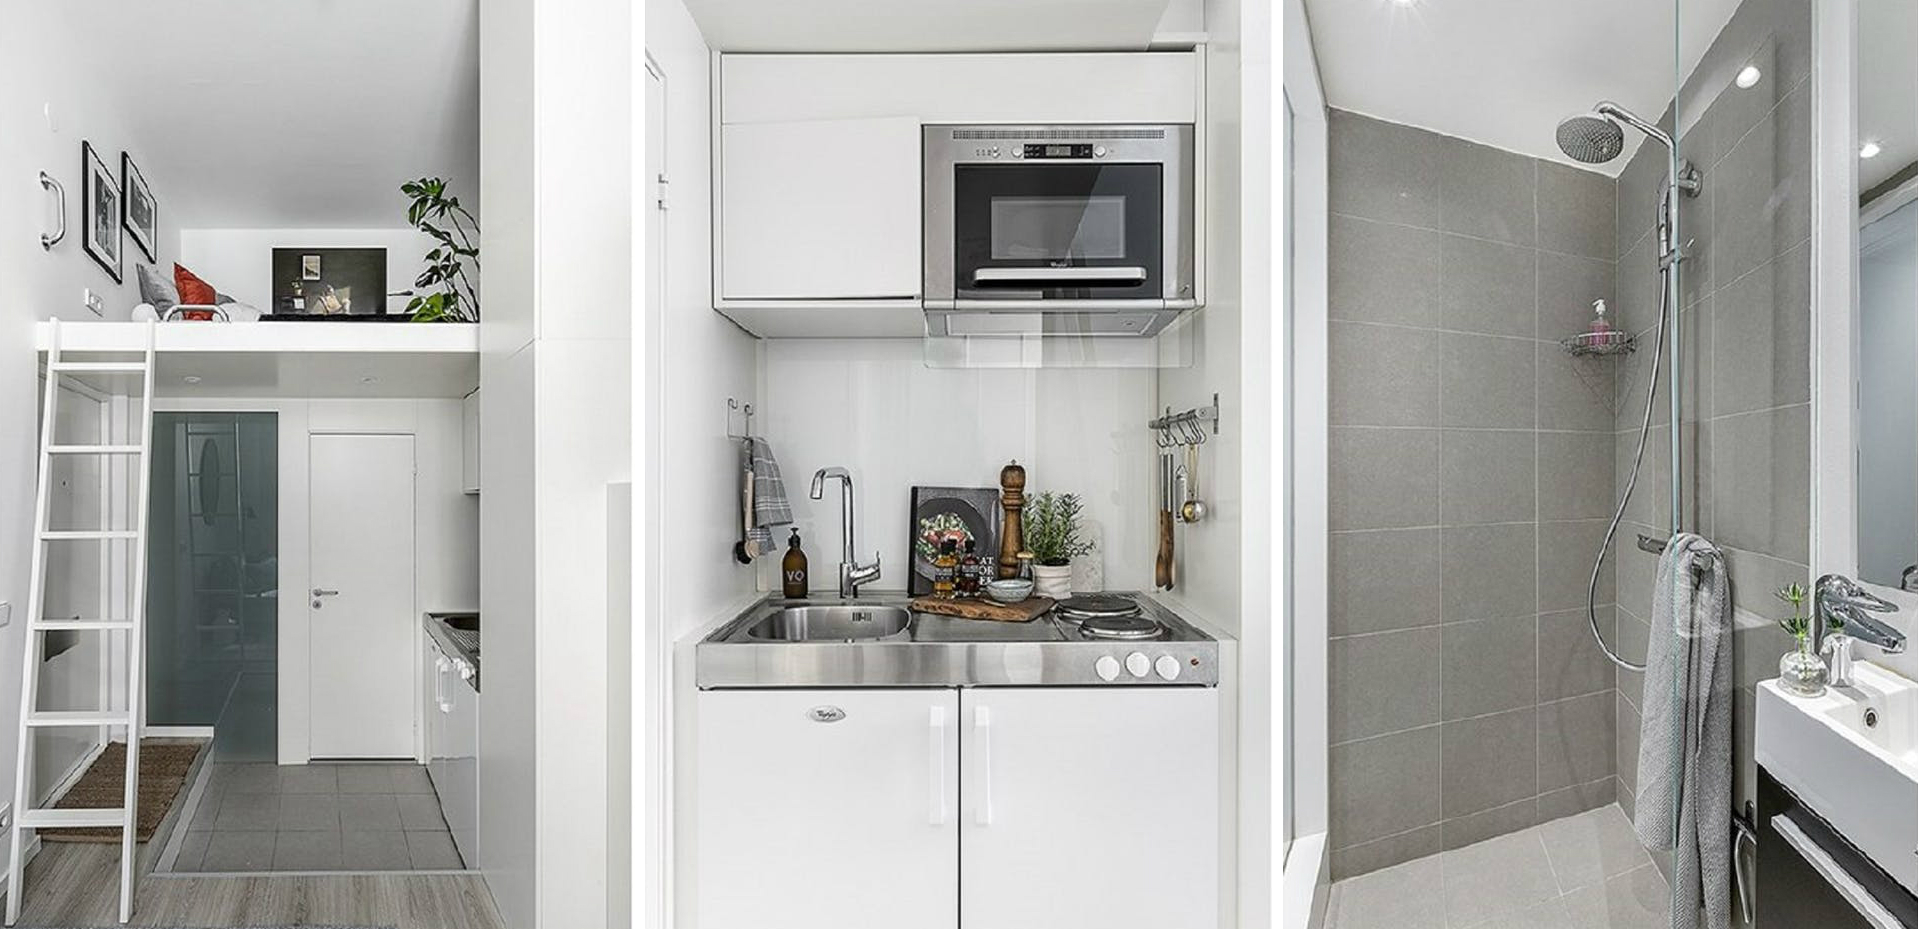 This 100-square-foot apartment is absurdly small—but somehow still works